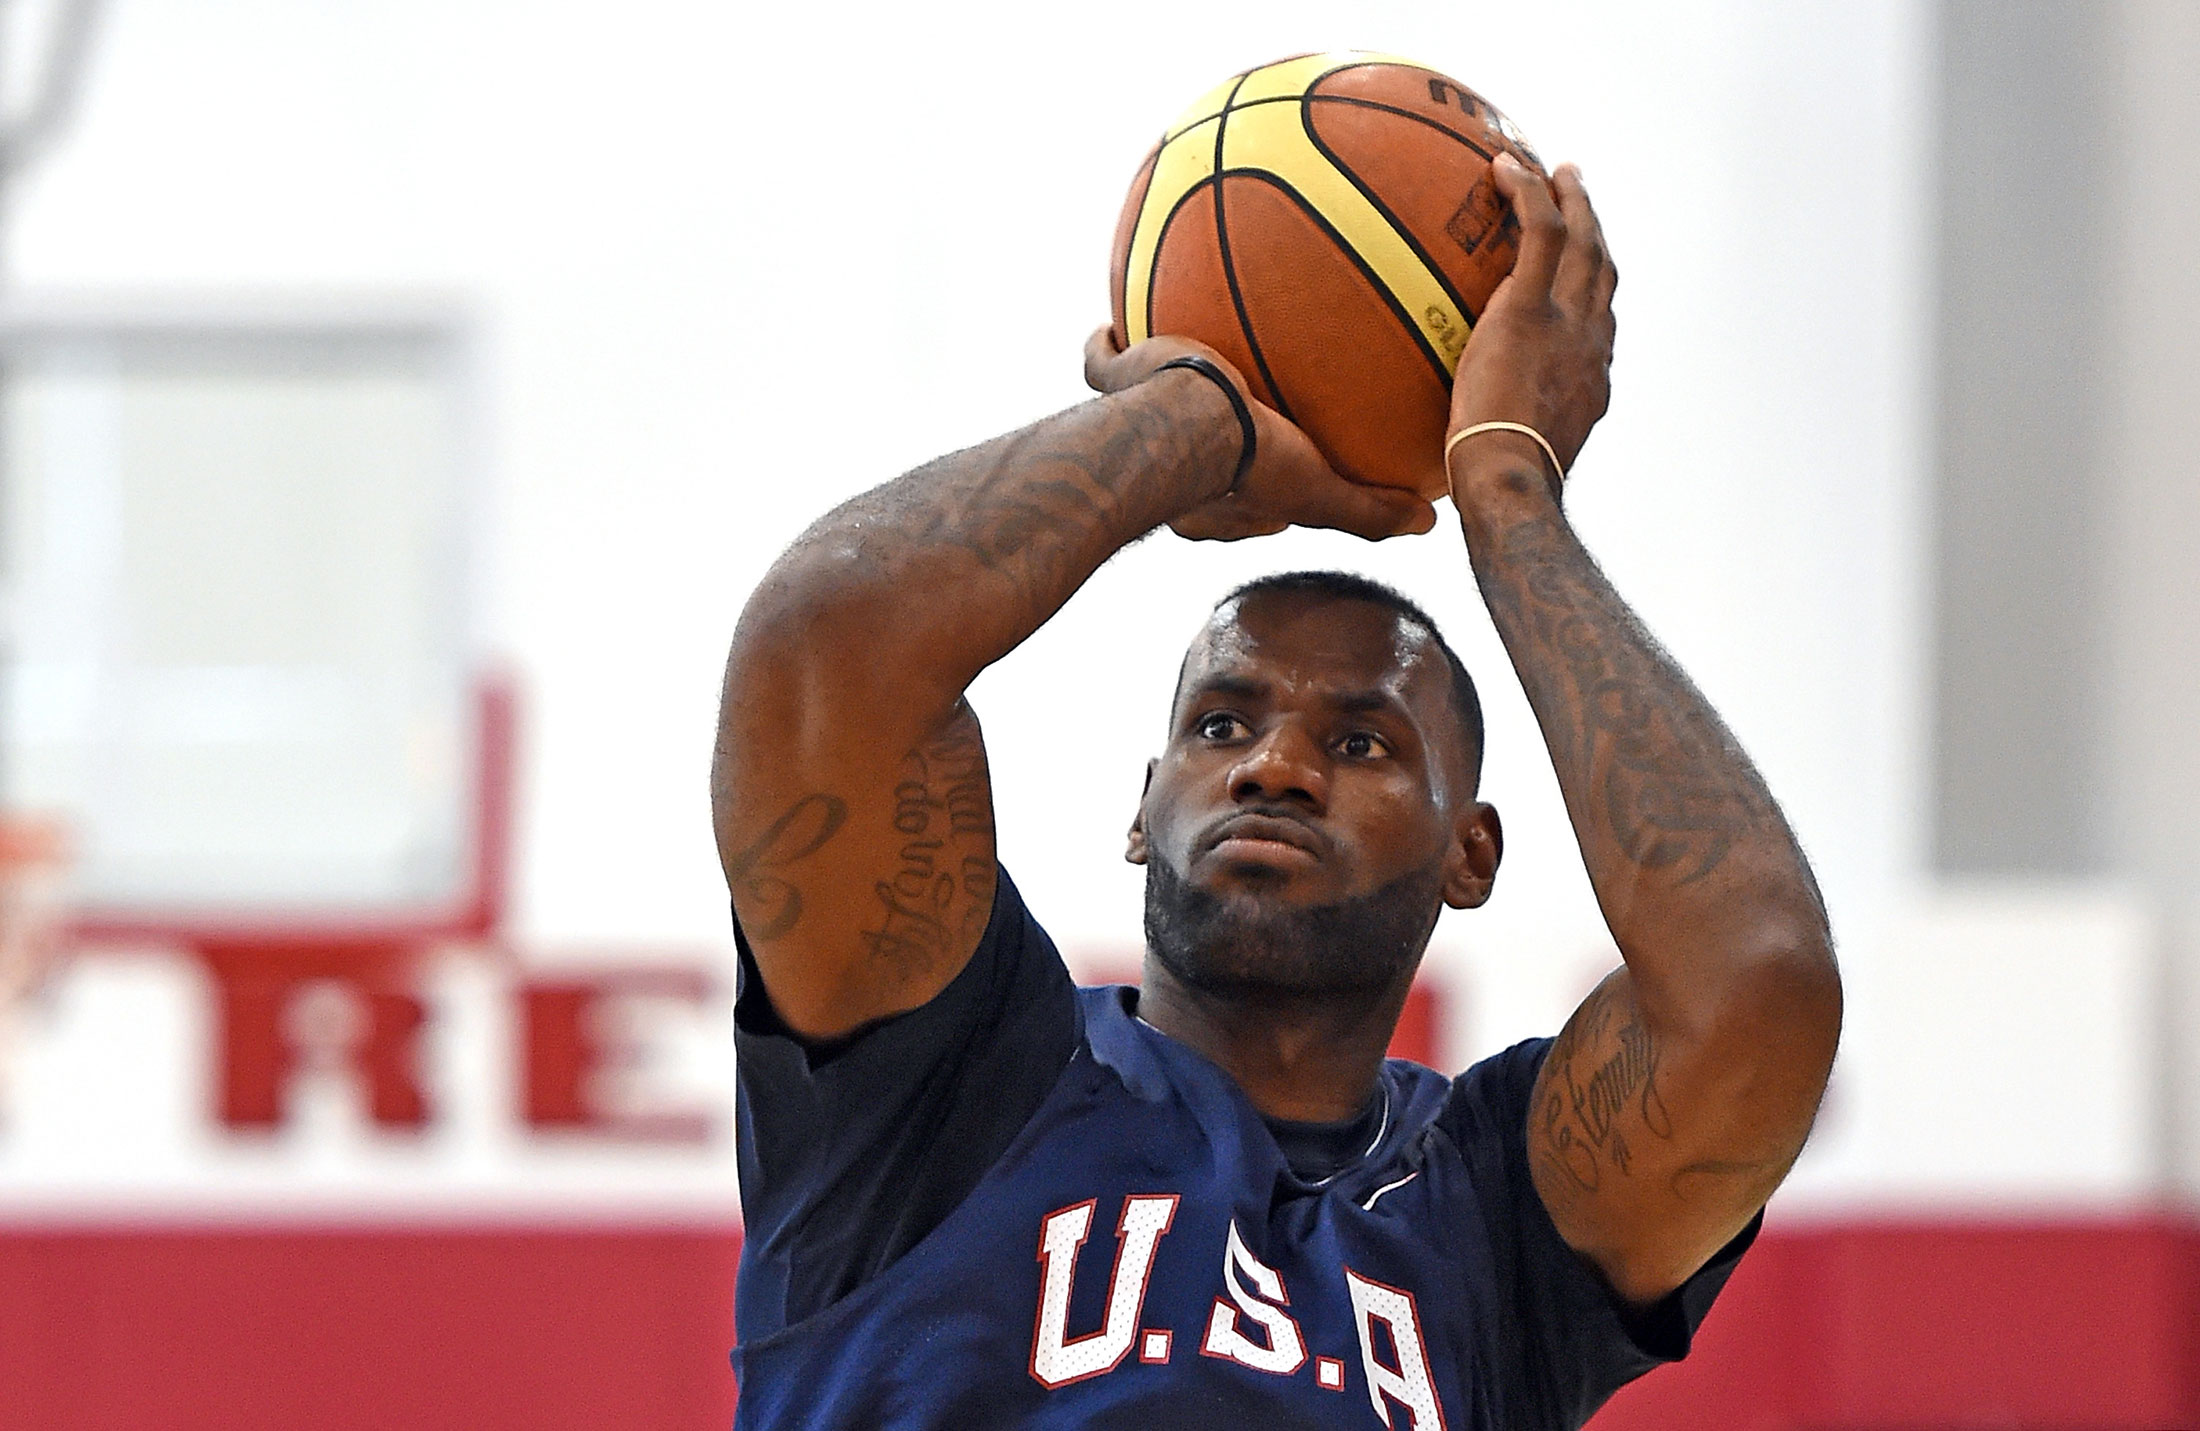 Lebron discovers little known technology company called jpmorgan lebron discovers little known technology company called jpmorgan bloomberg nvjuhfo Gallery